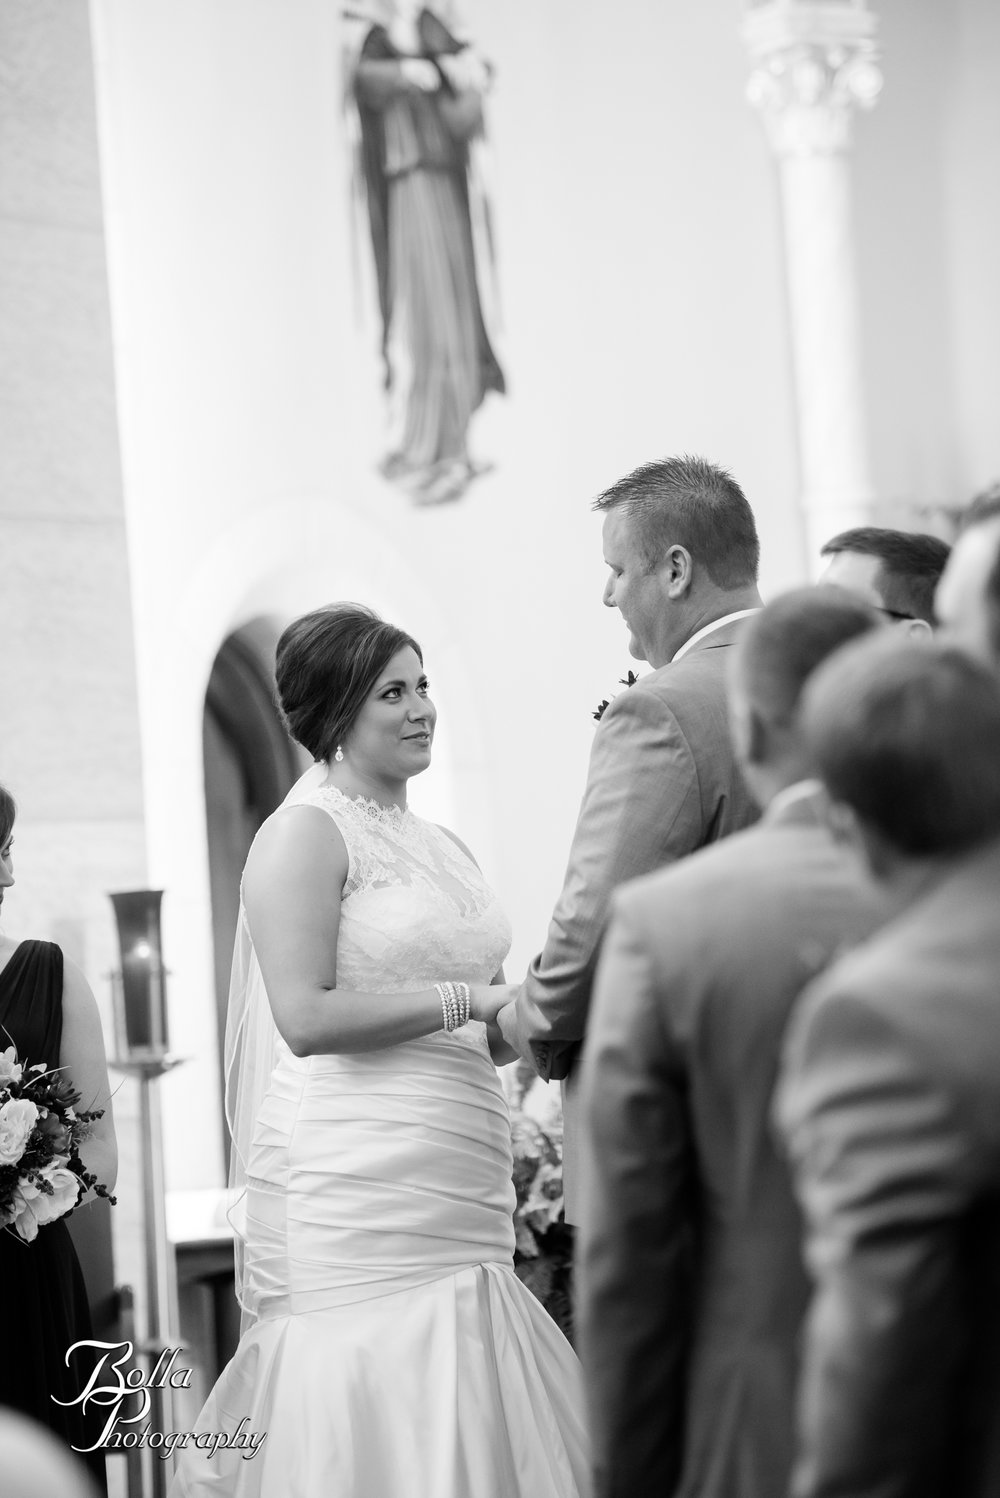 Bolla_photography_edwardsville_wedding_photographer_st_louis_weddings_Heinzmann-0218.jpg